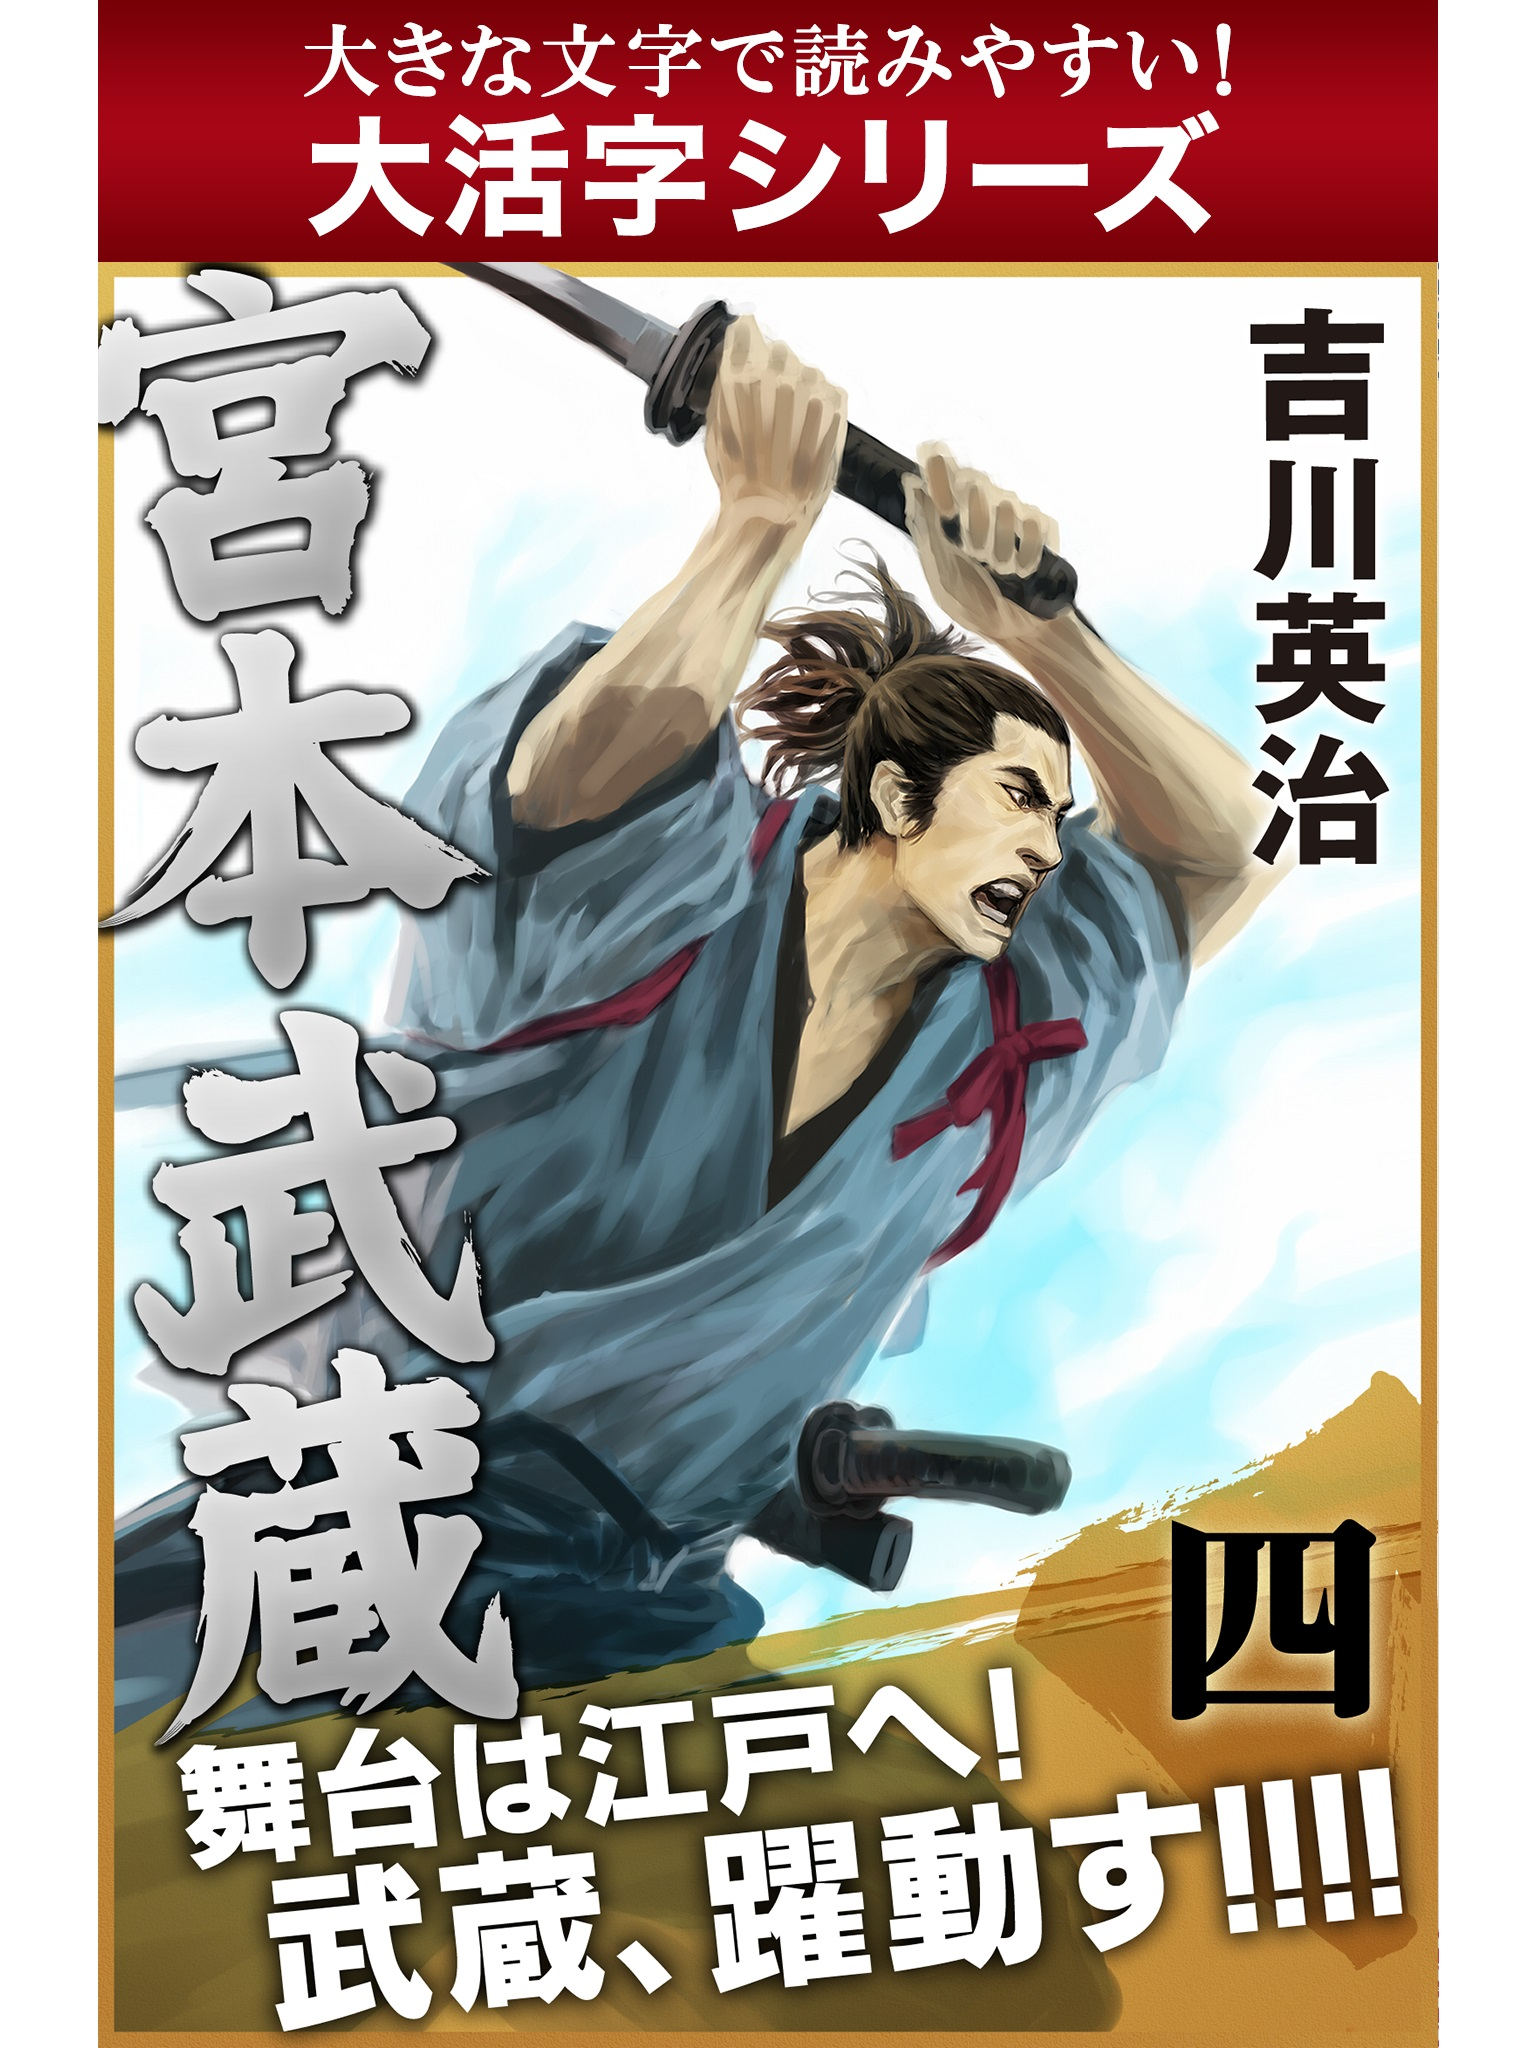 【android/kindle端末対応 大活字シリーズ】宮本武蔵 四巻